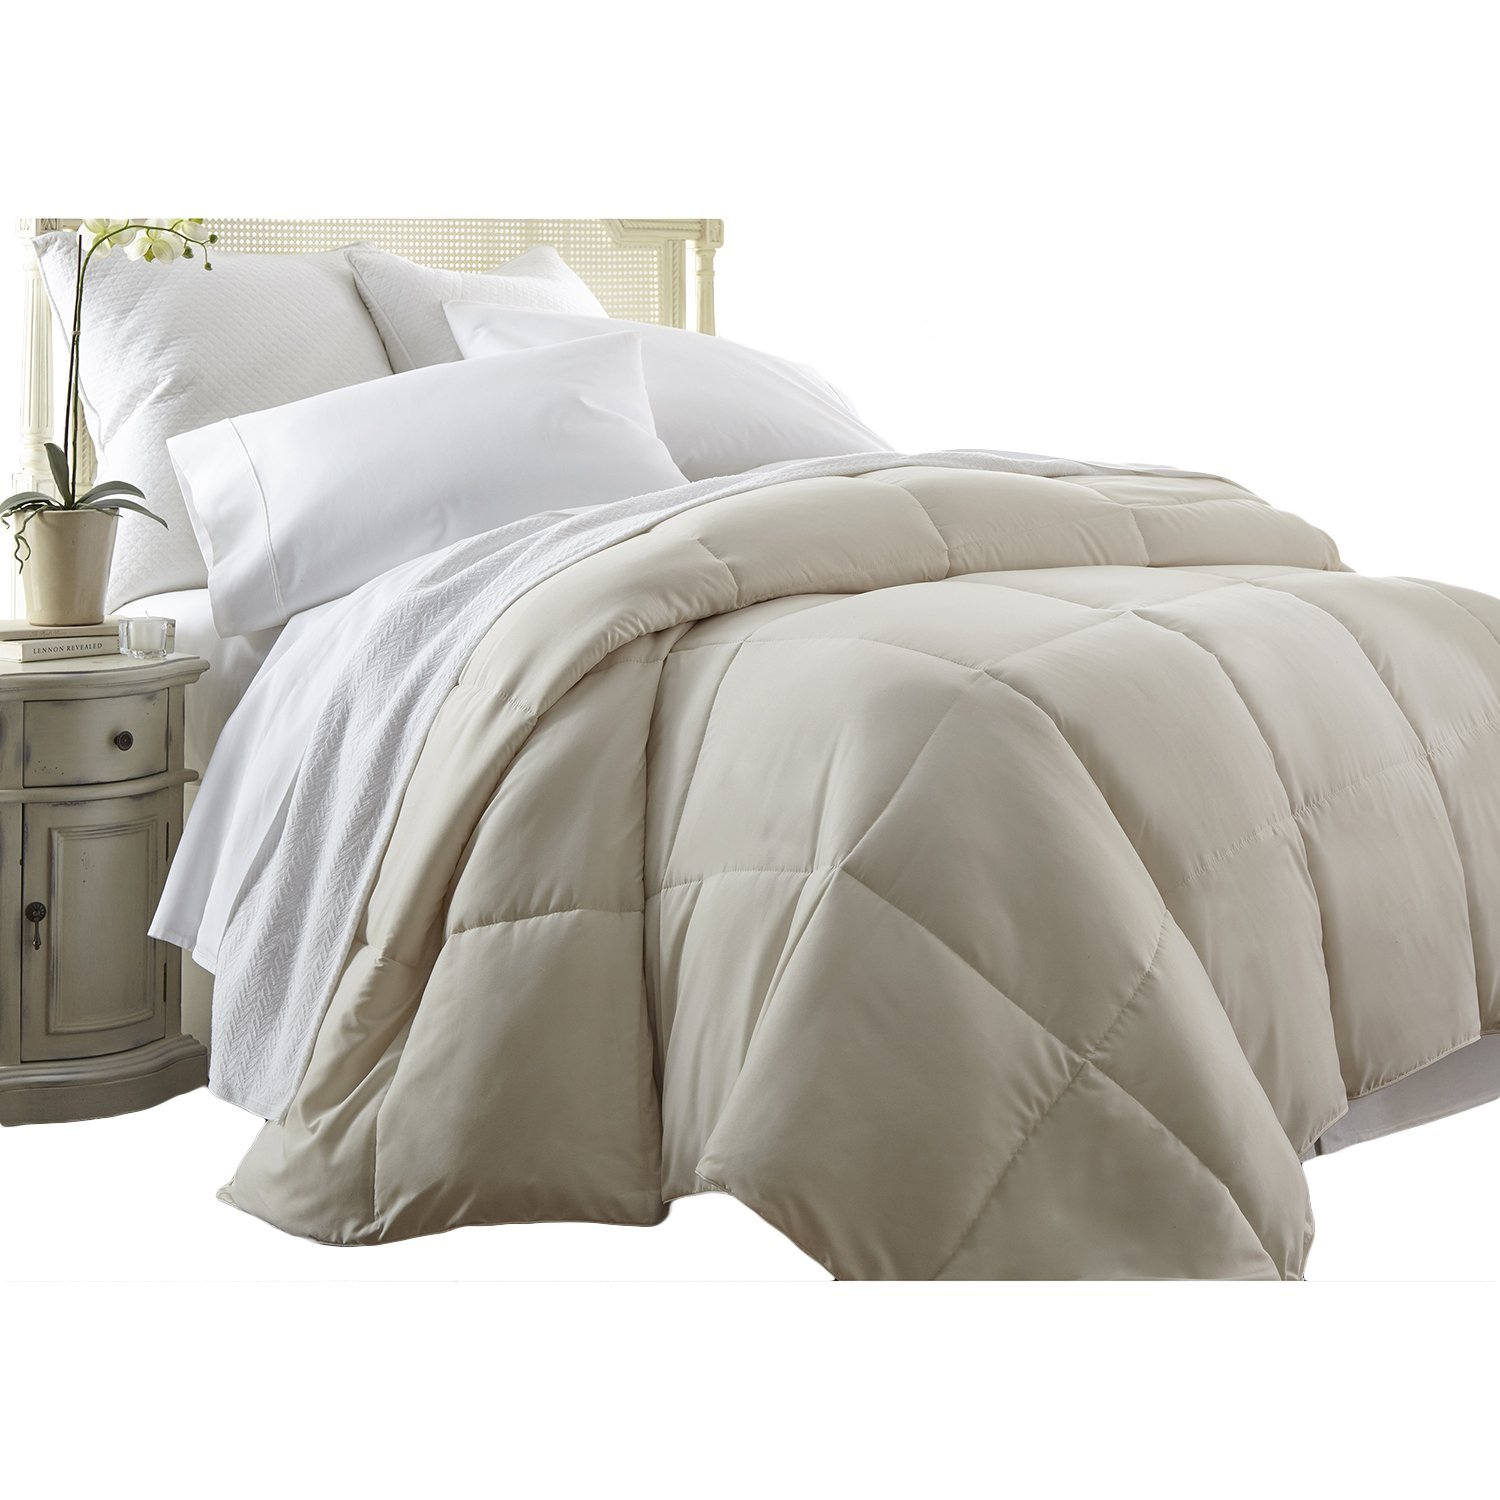 deals shopping on cal alternative down cheap guides line ivory comforter find king